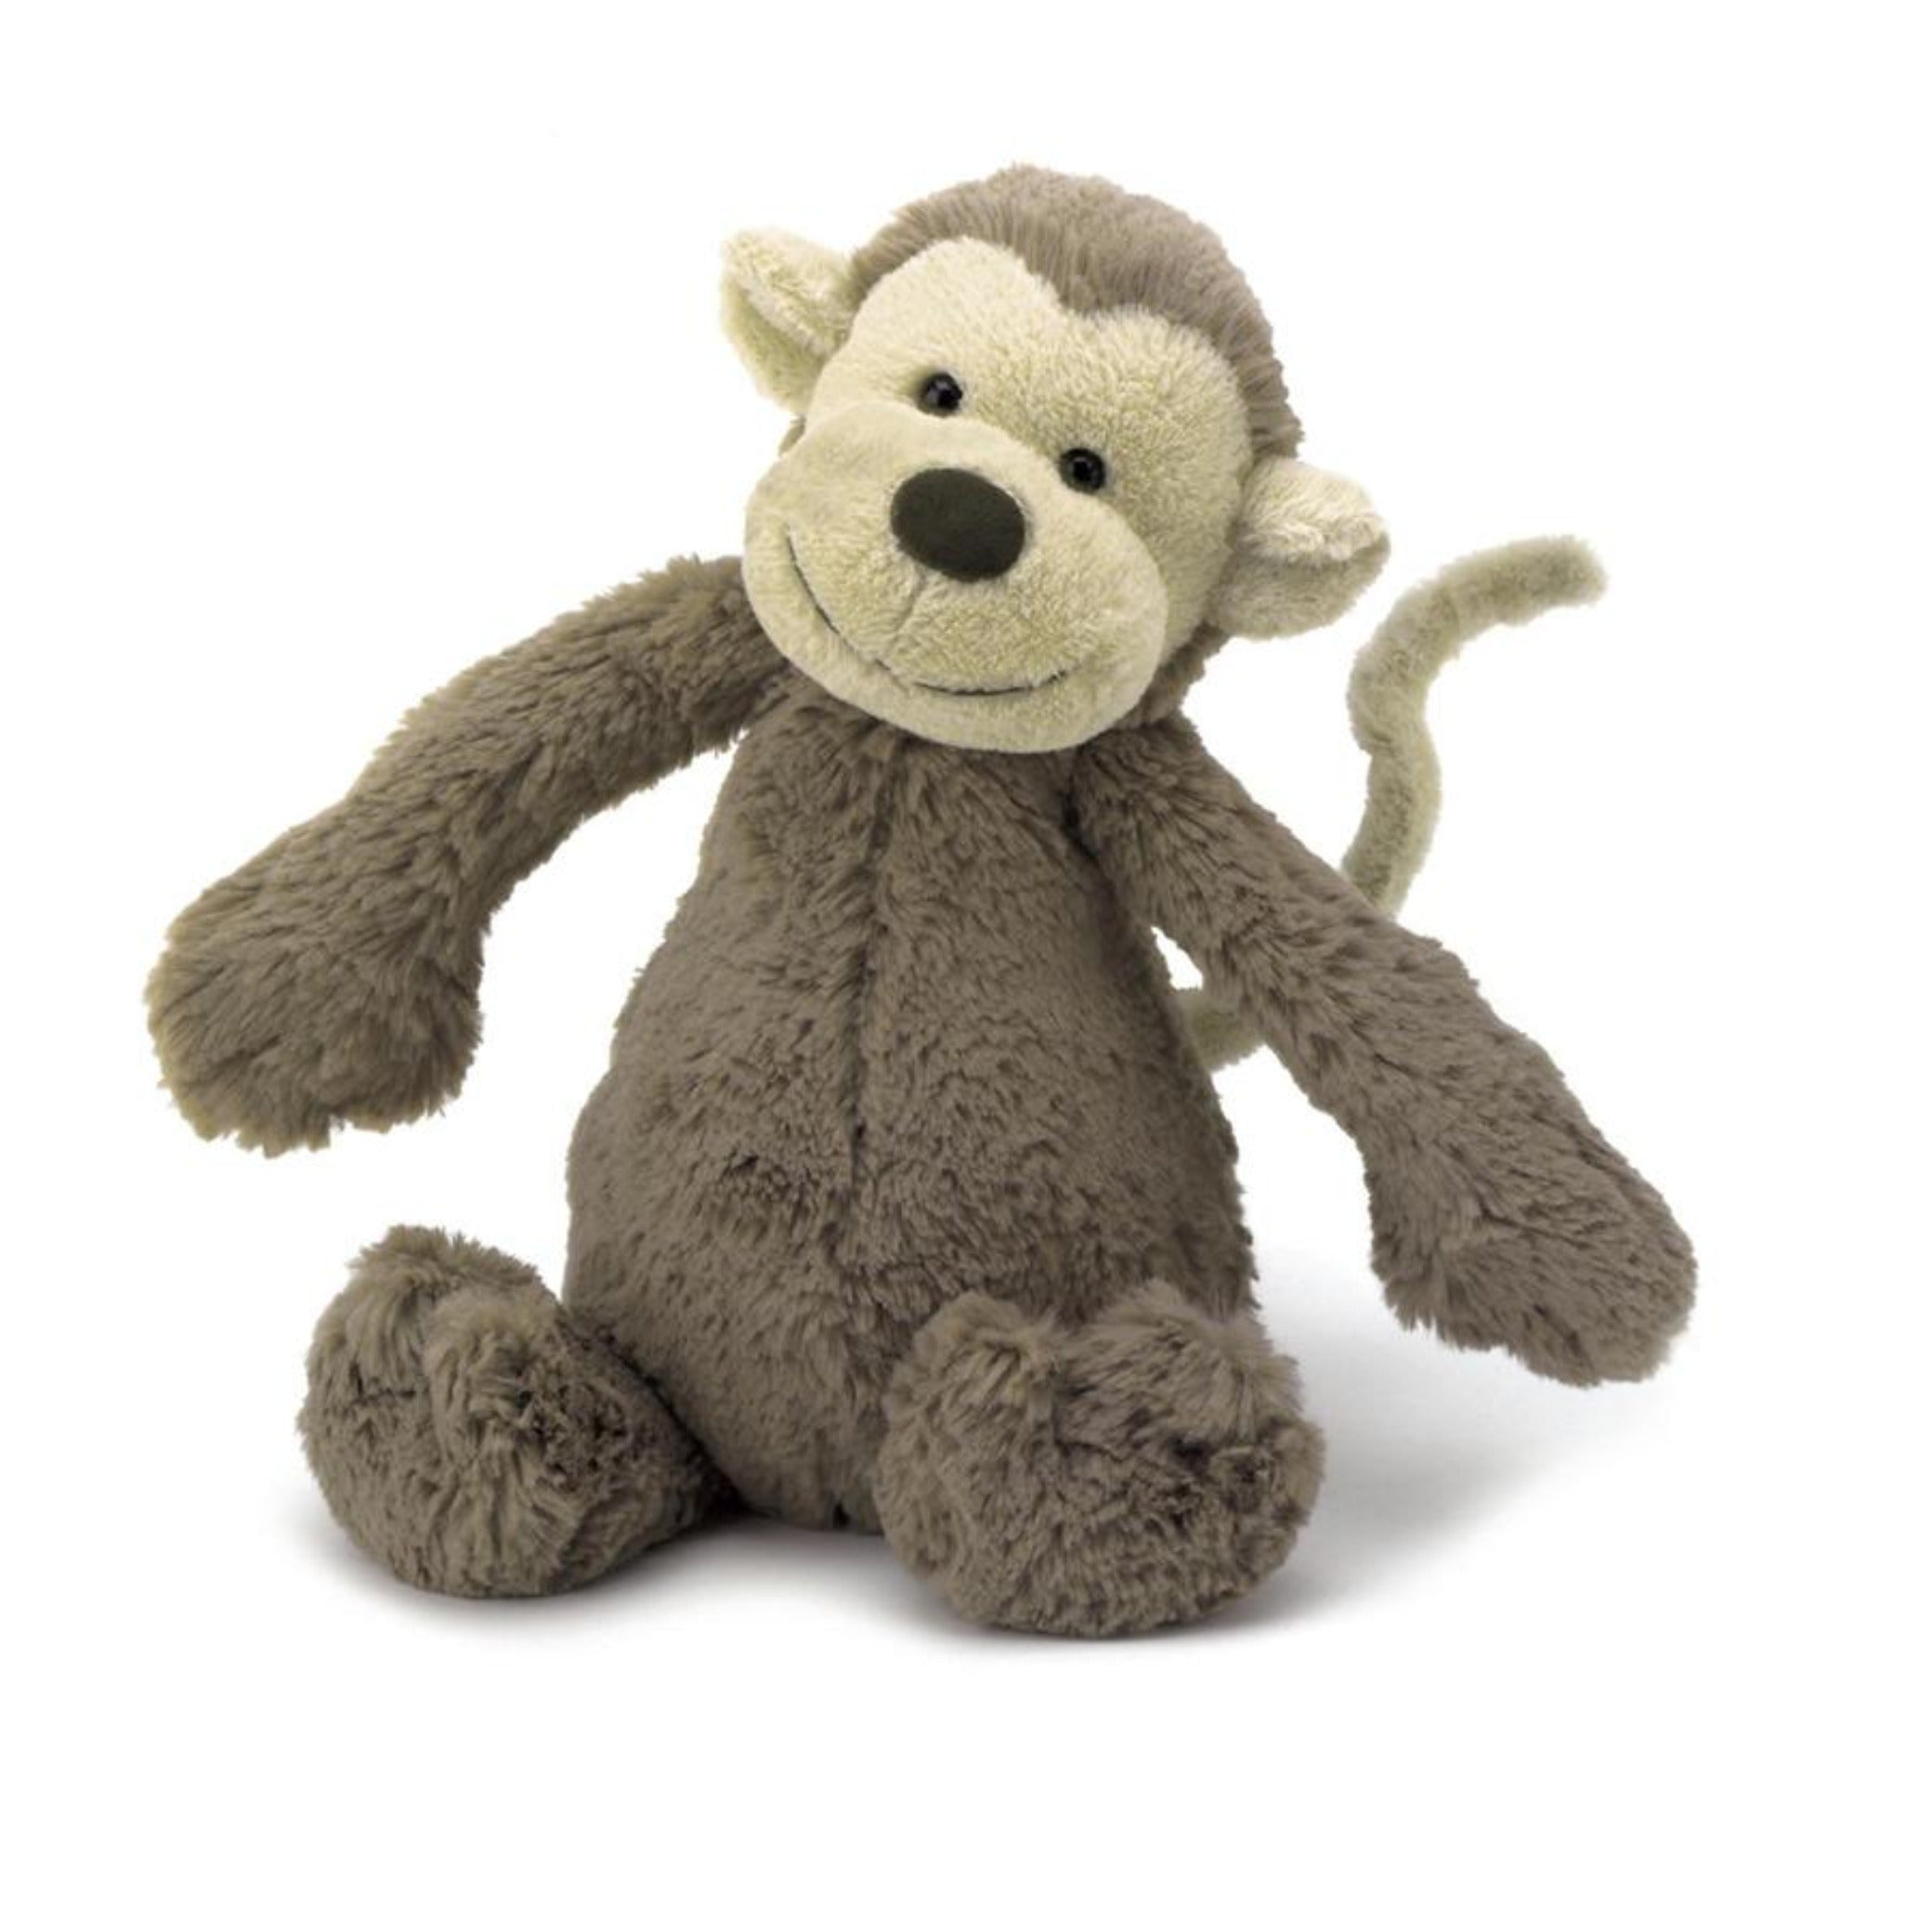 JellyCat plush small monkey toy